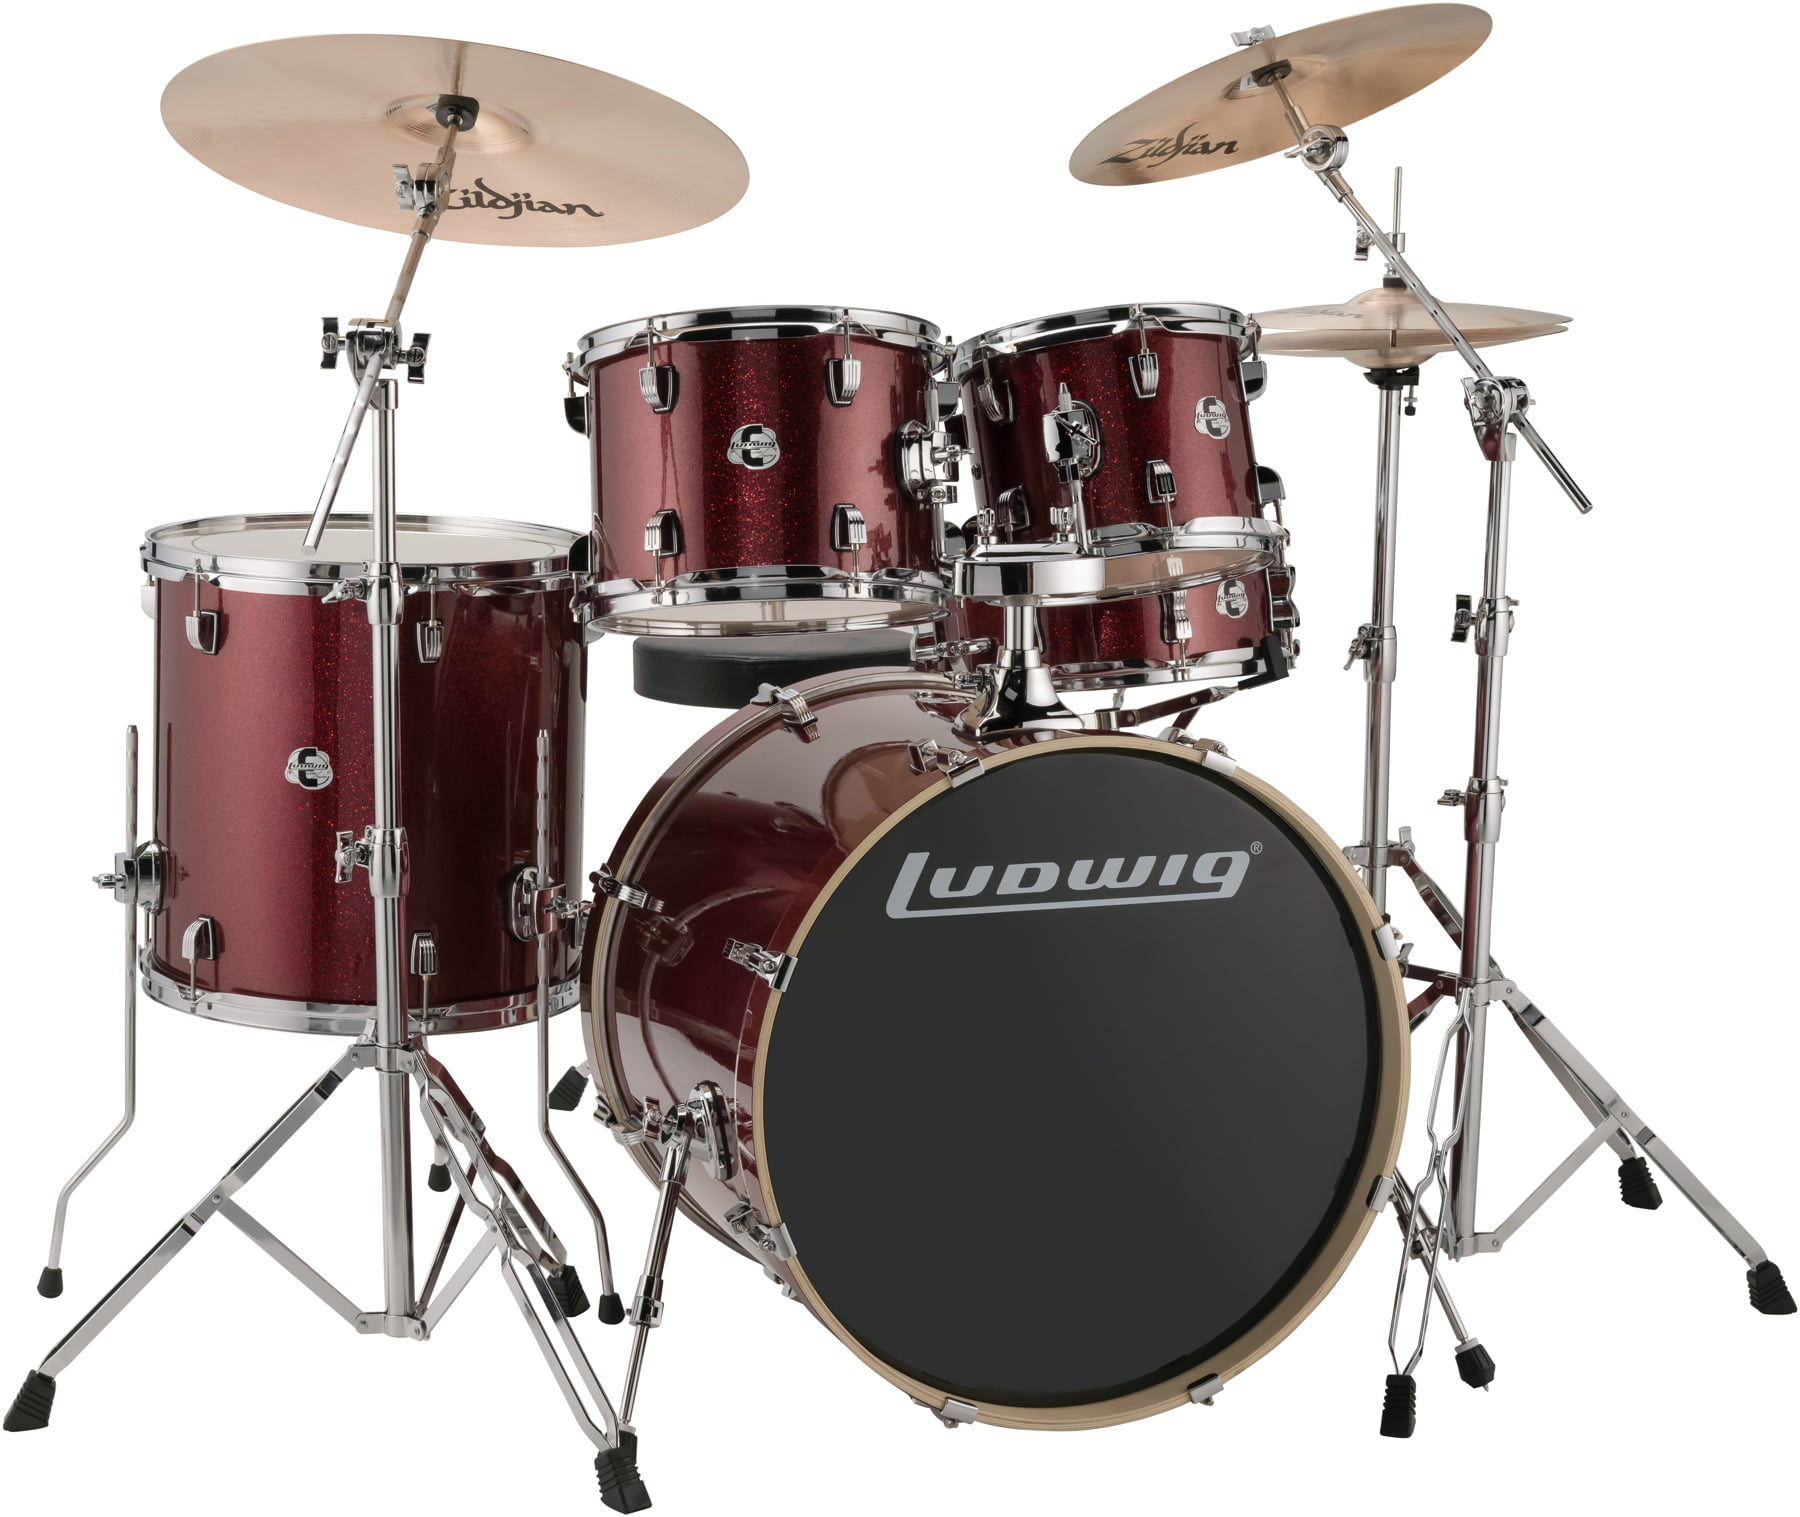 Ludwig LCEE22025 Element Evolution 5-piece Drum Set Red Sparkle Finish by Ludwig